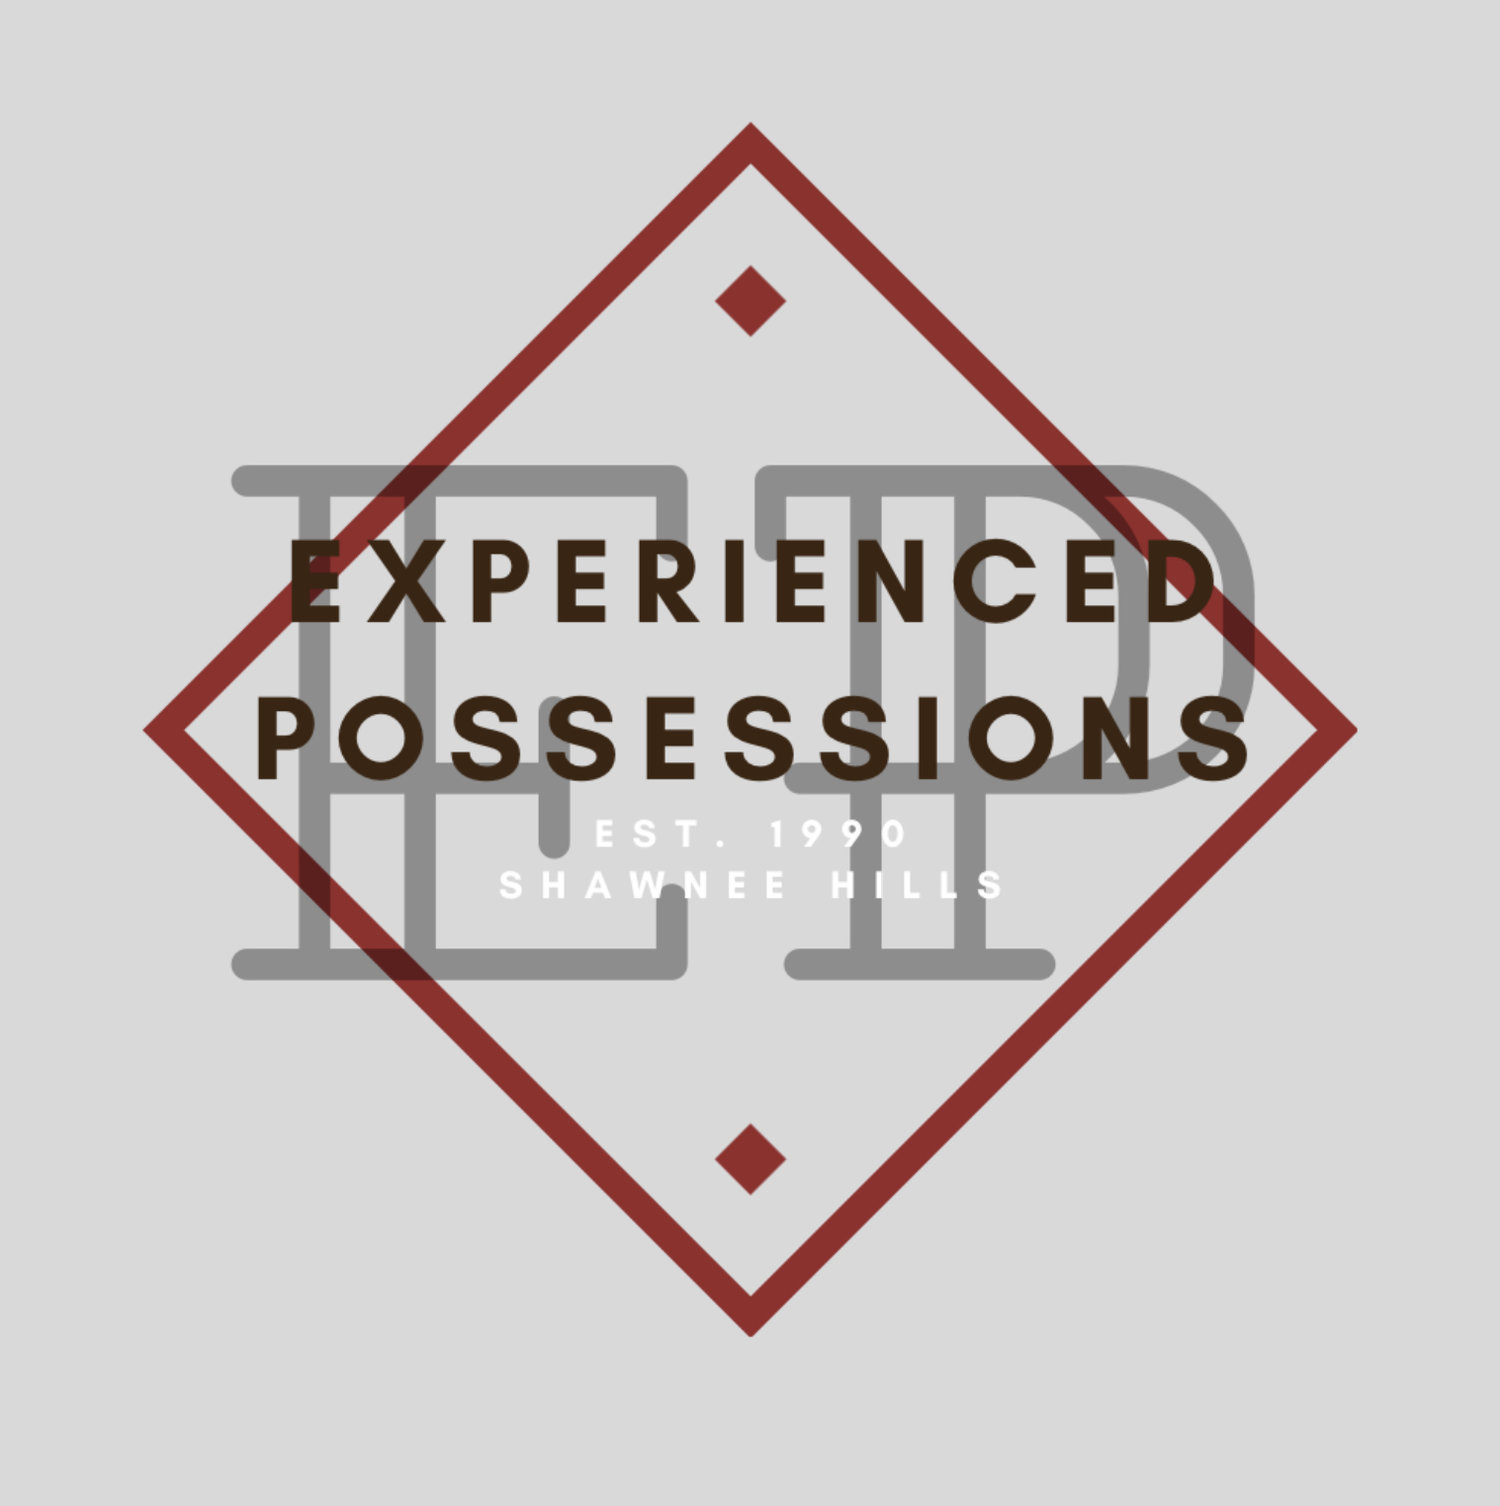 Experienced Possessions